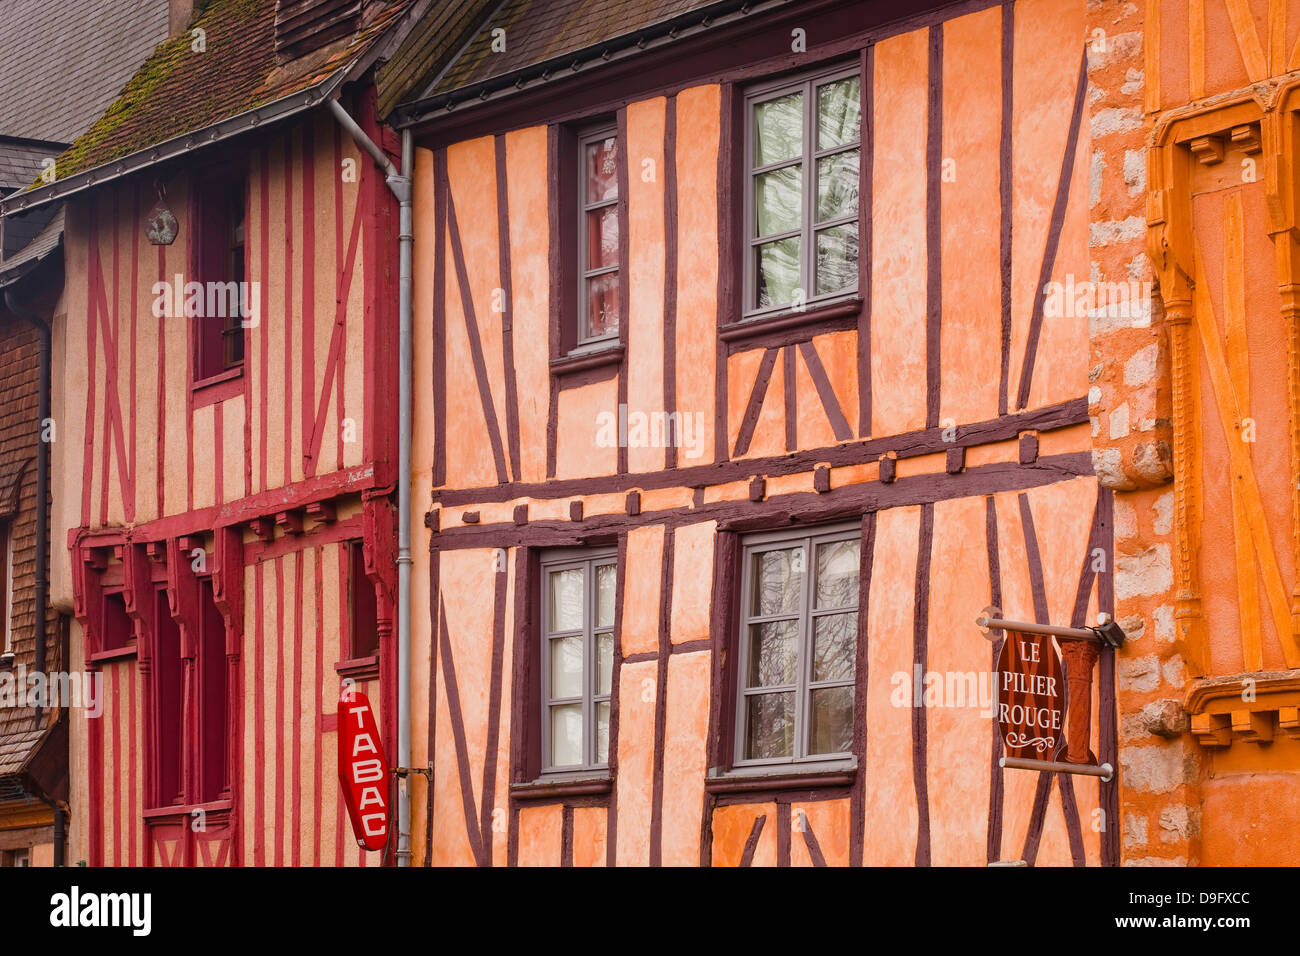 Half timbered houses in the old town of Le Mans, Sarthe, Pays de la Loire, France Stock Photo